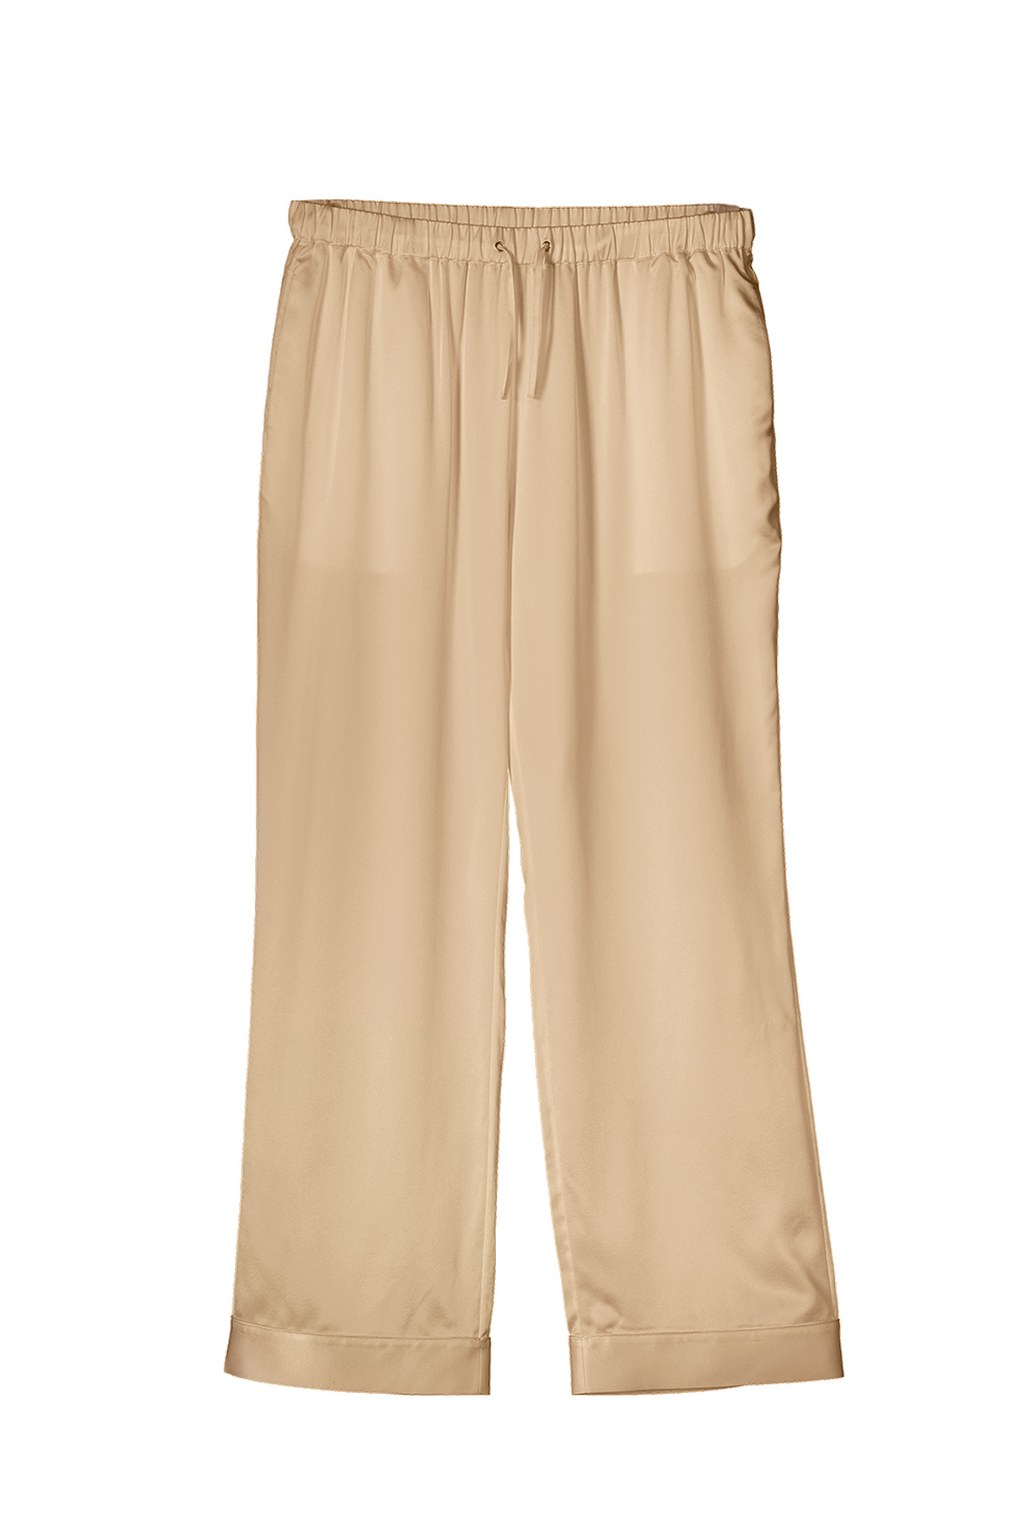 Balmuir BMuir Marbel Trousers